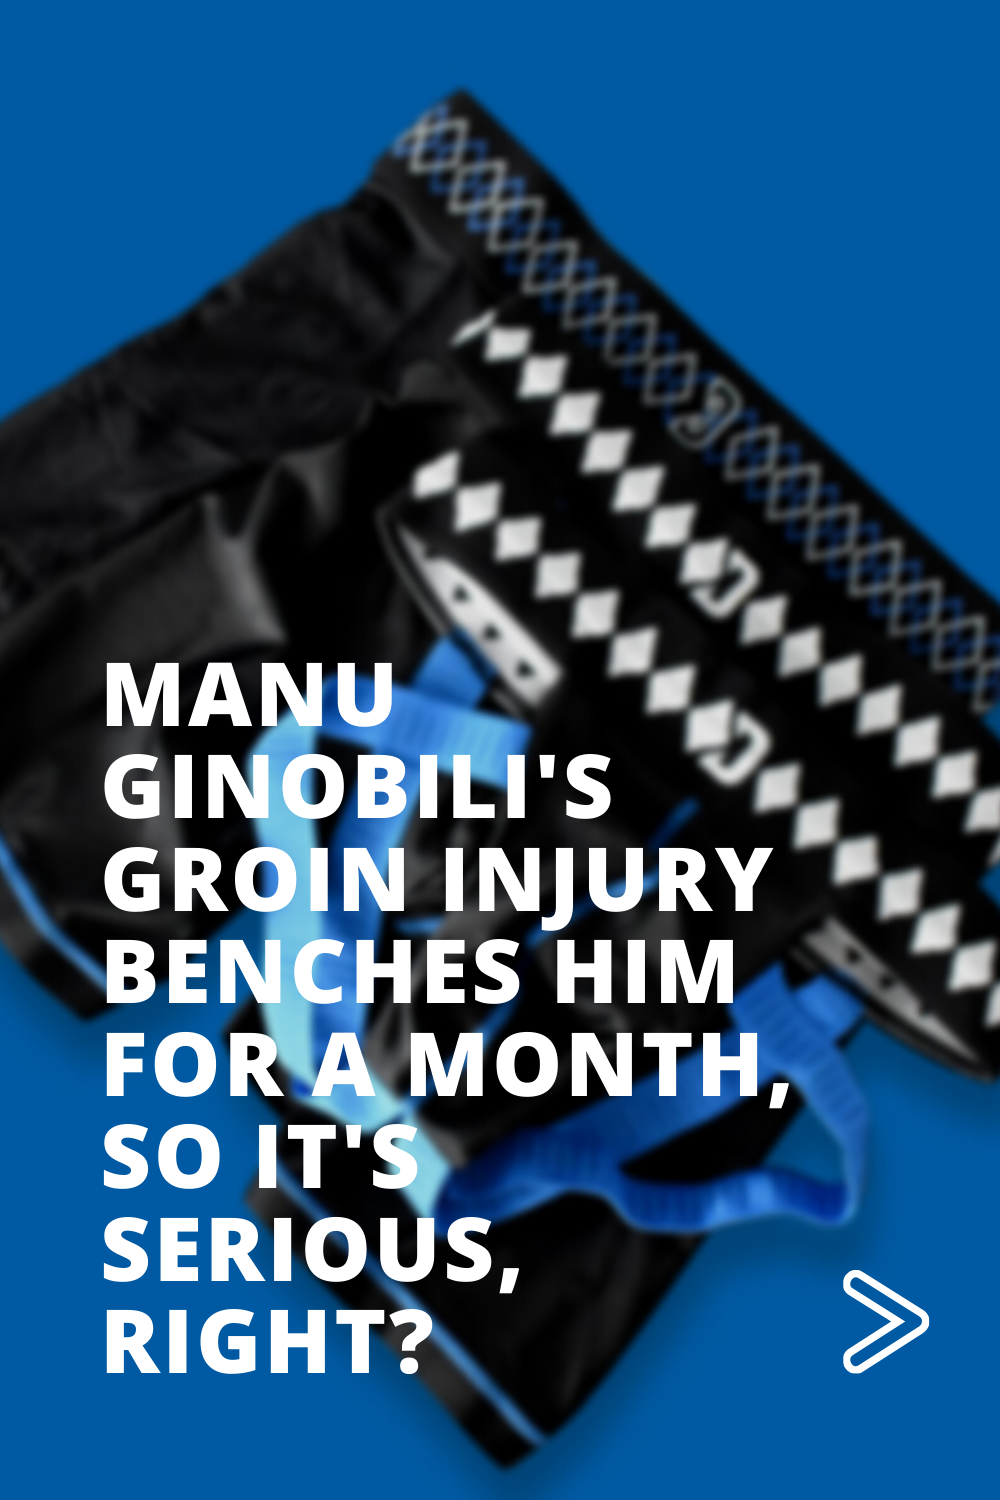 Manu Ginobili's Groin Injury Benches Him for a Month, So it's Serious, Right?